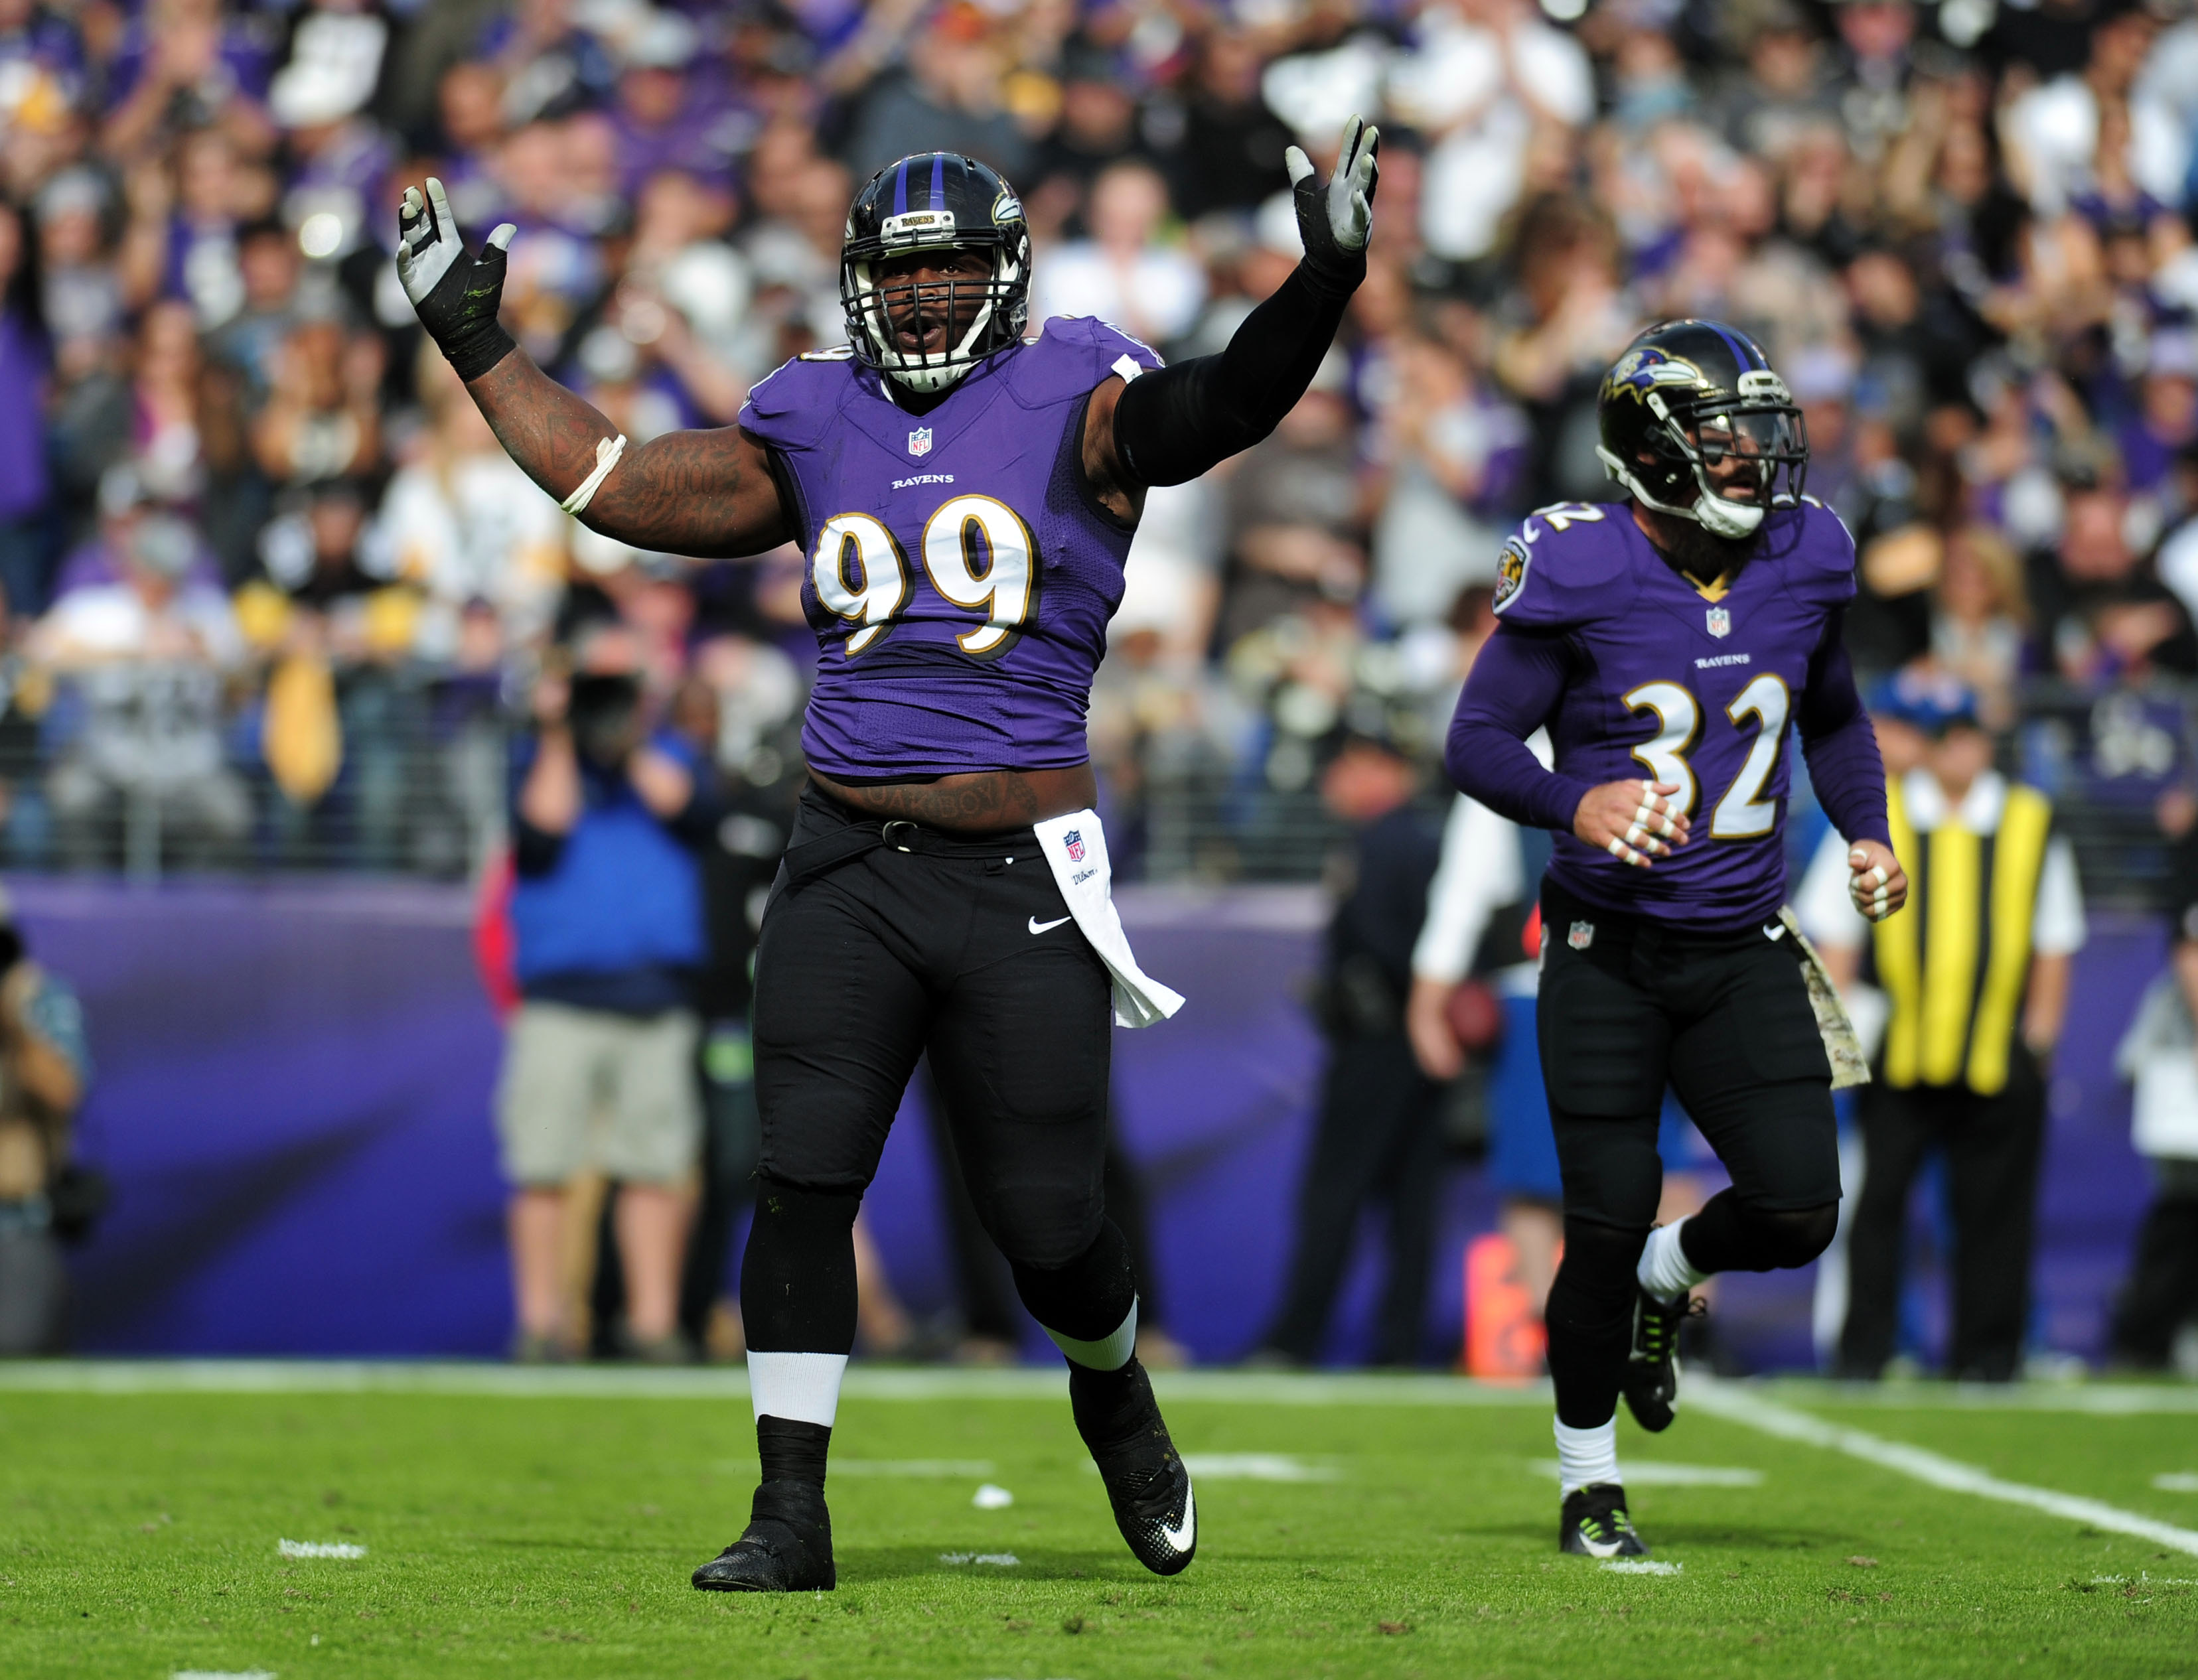 9658203-nfl-pittsburgh-steelers-at-baltimore-ravens